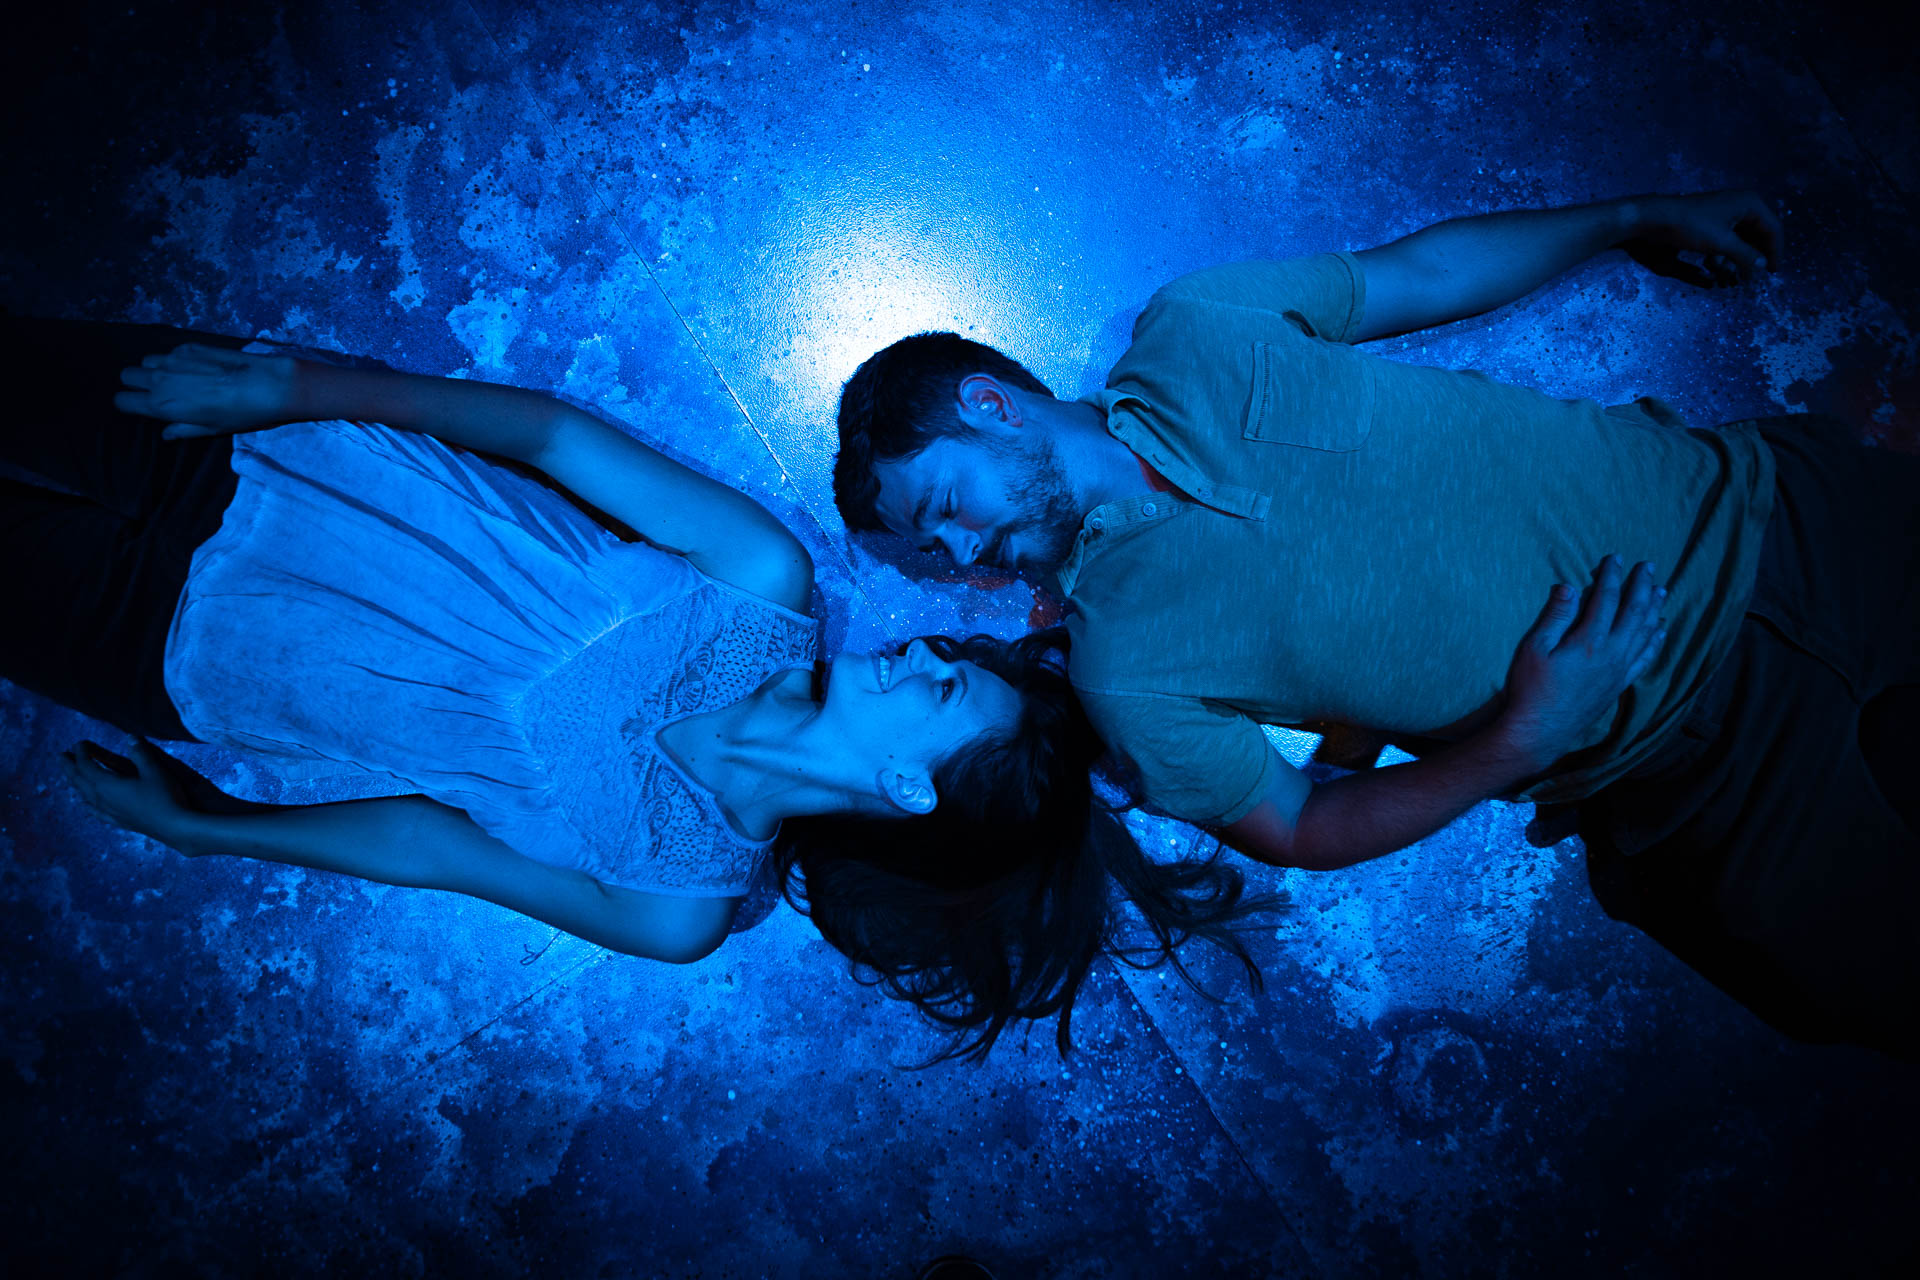 TRANSCENDENT CONSTELLATIONS - BY BILL HIRSCHMAN | FLORIDA THEATER ON STAGE